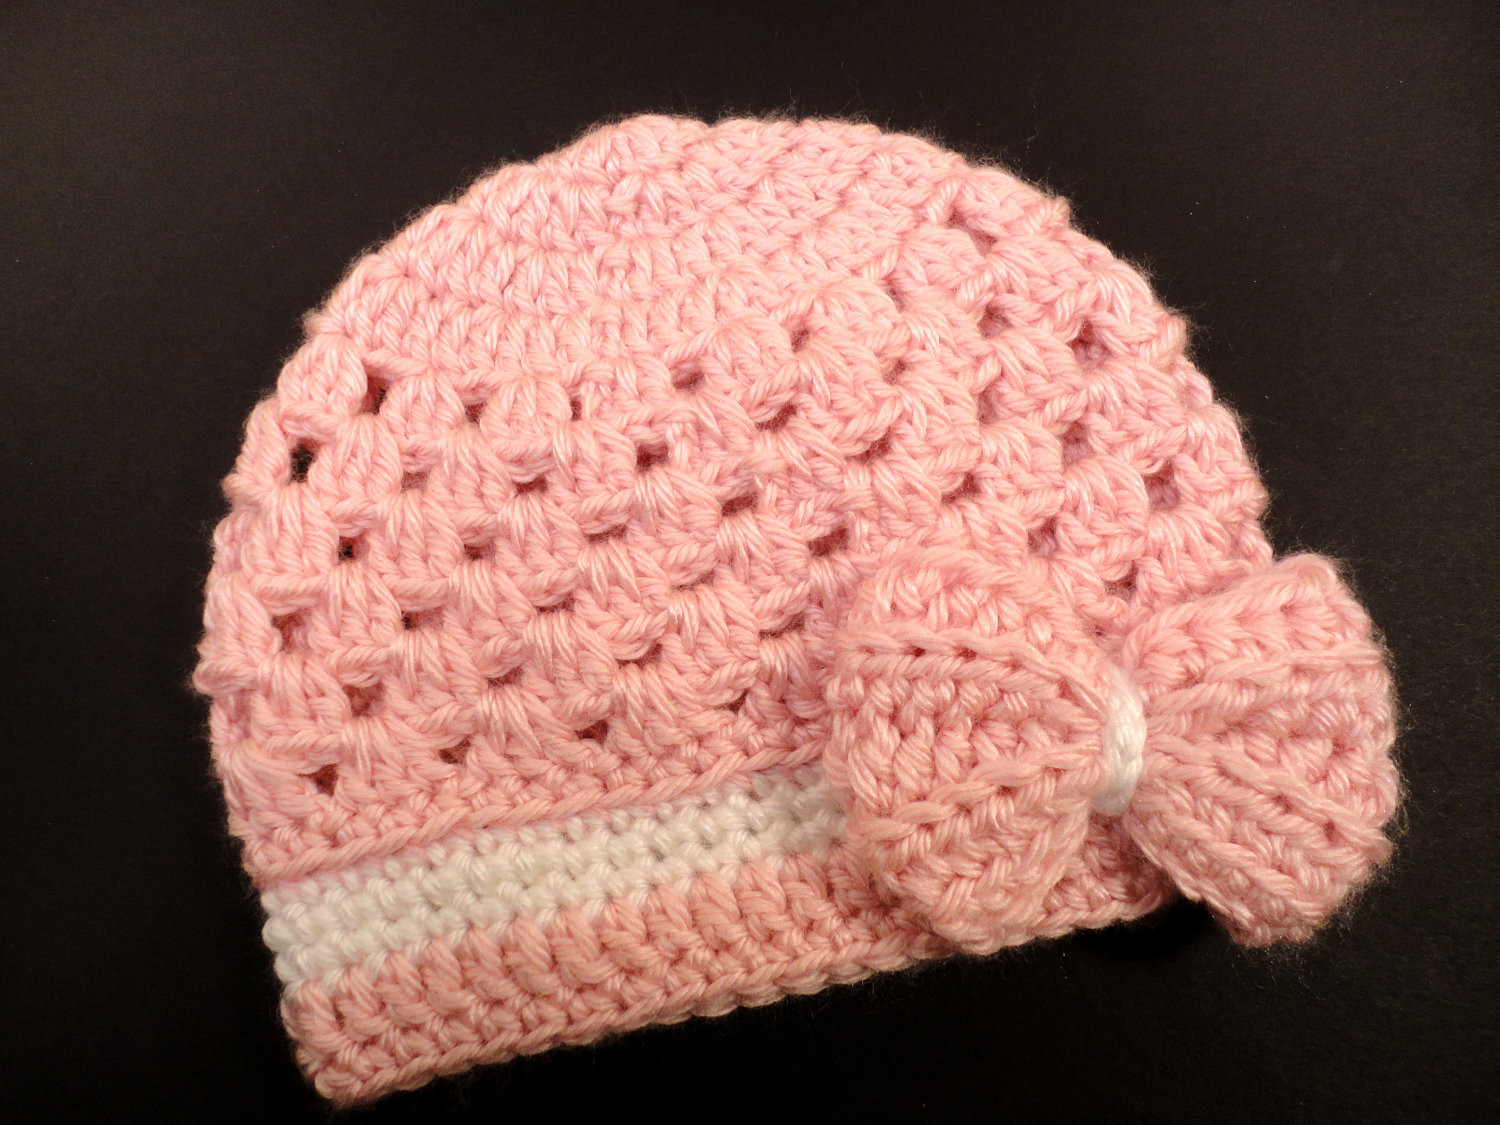 Lovely Free Crochet Baby Hats Patterns for Beginners Crochet Free Crochet Beanie Hat Pattern Of Amazing 48 Images Free Crochet Beanie Hat Pattern